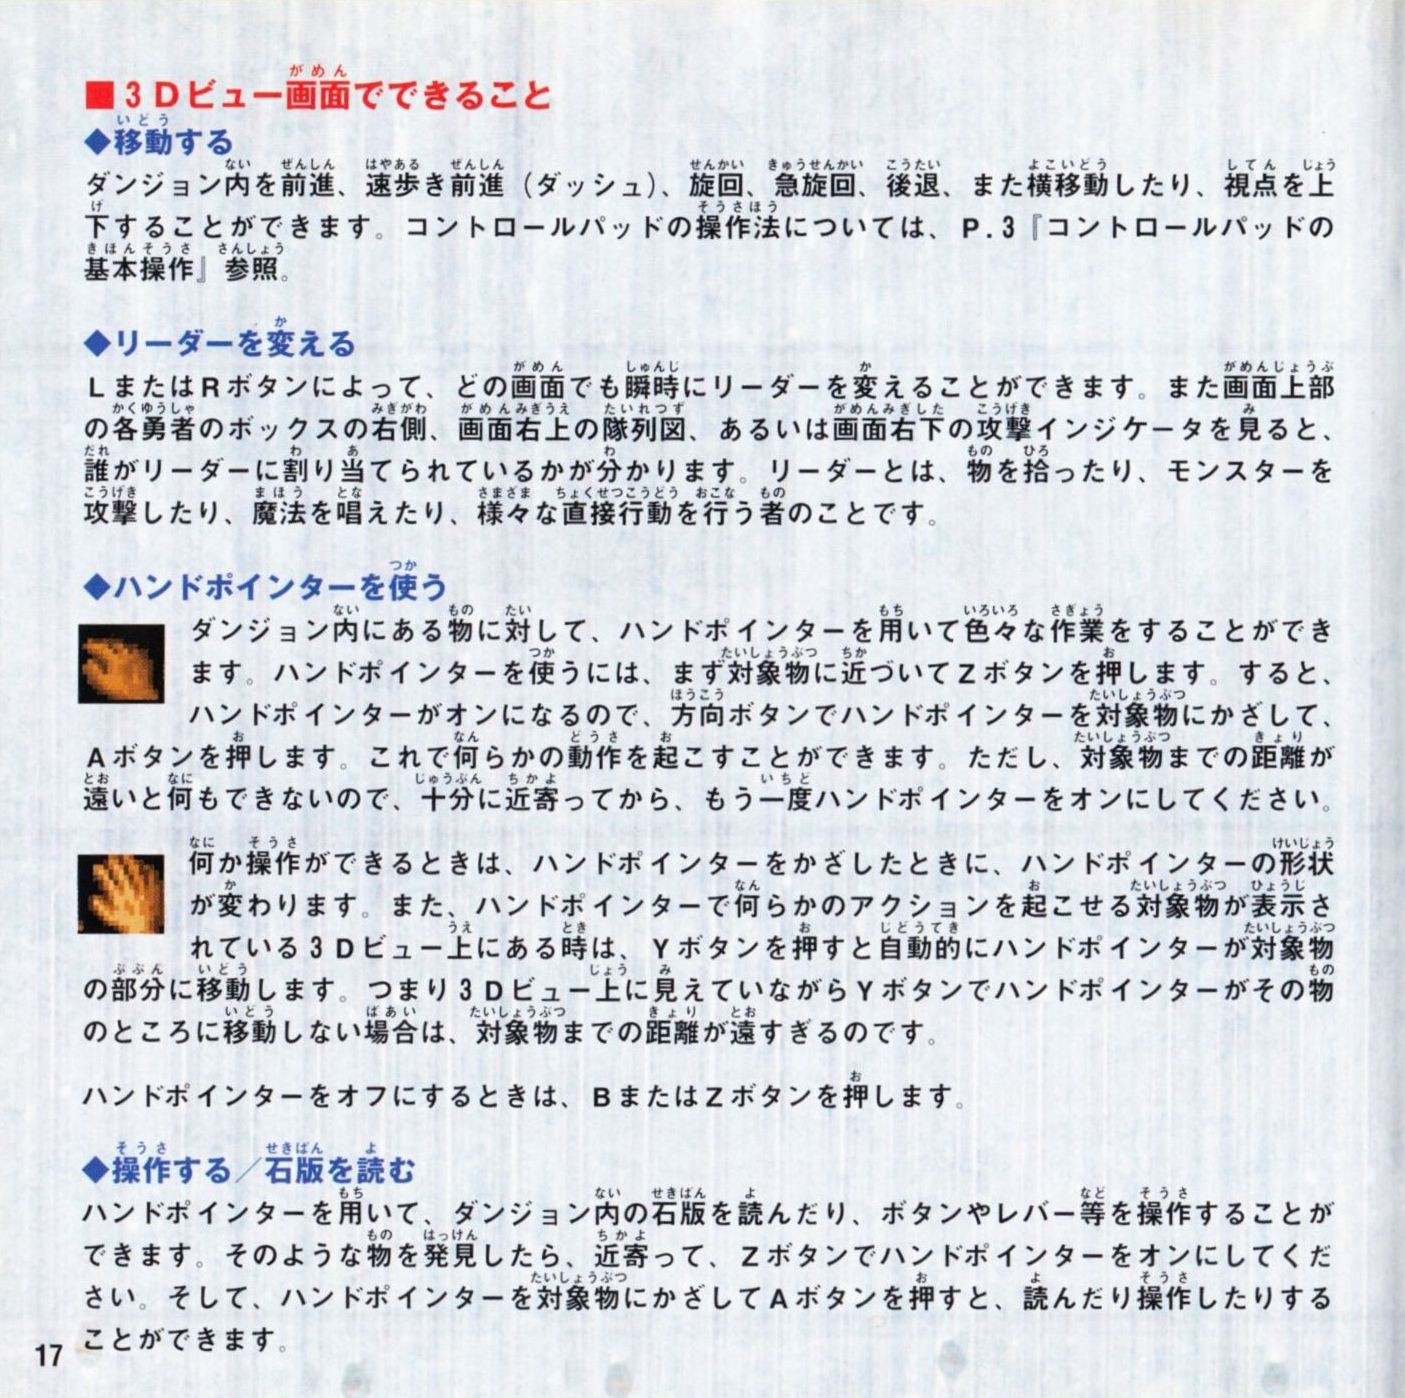 Game - Dungeon Master Nexus - JP - Sega Saturn - Booklet - Page 018 - Scan